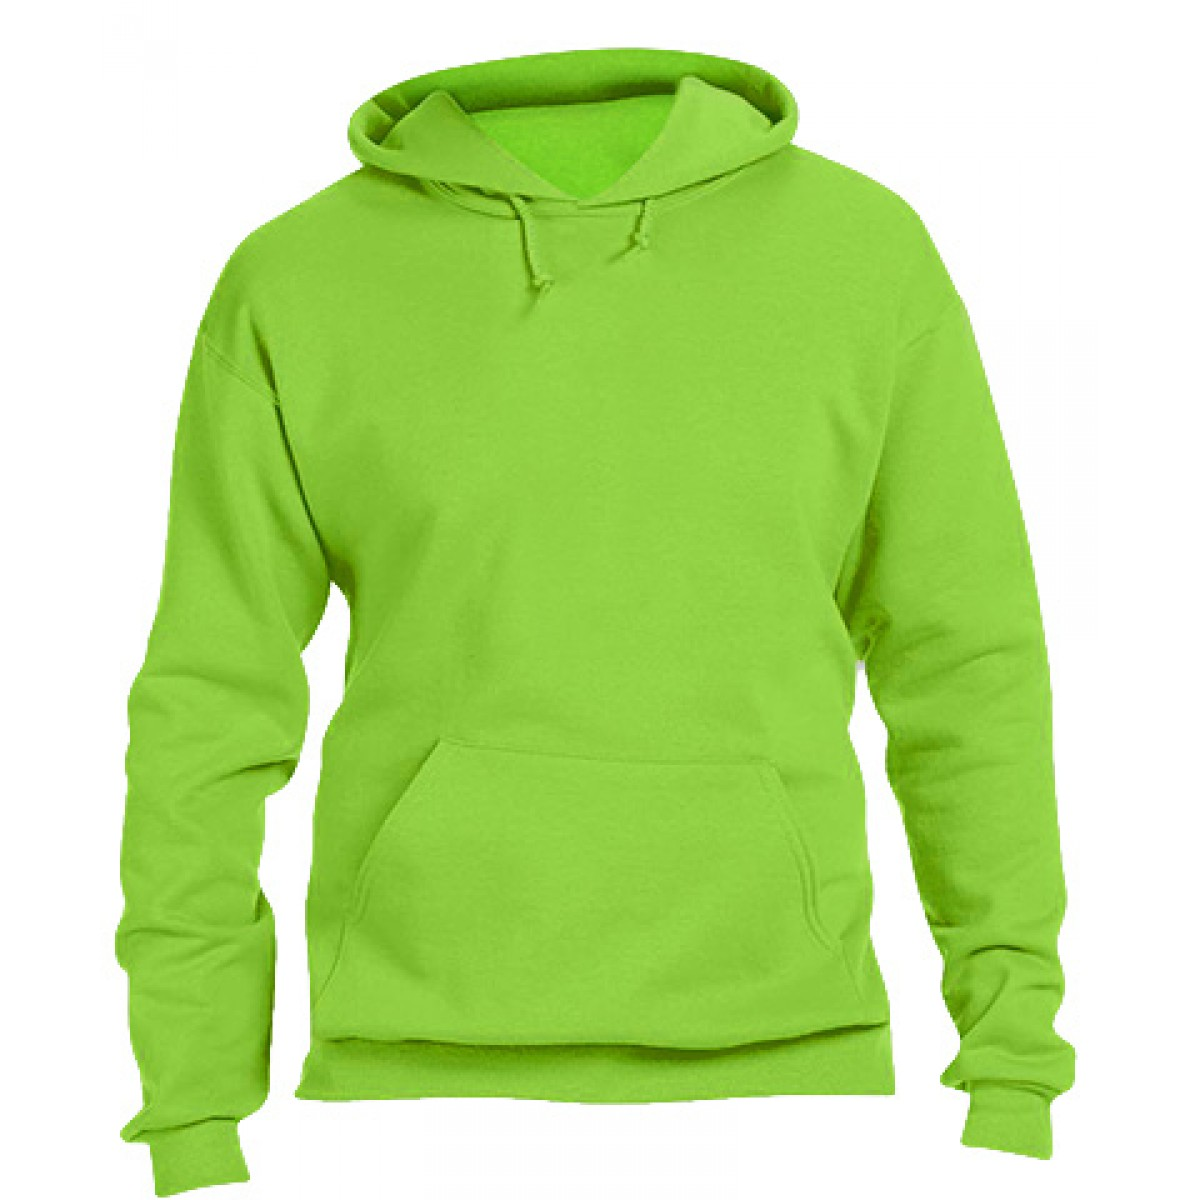 Hooded Sweatshirt 50/50 Heavy Blend -Neon Green-M